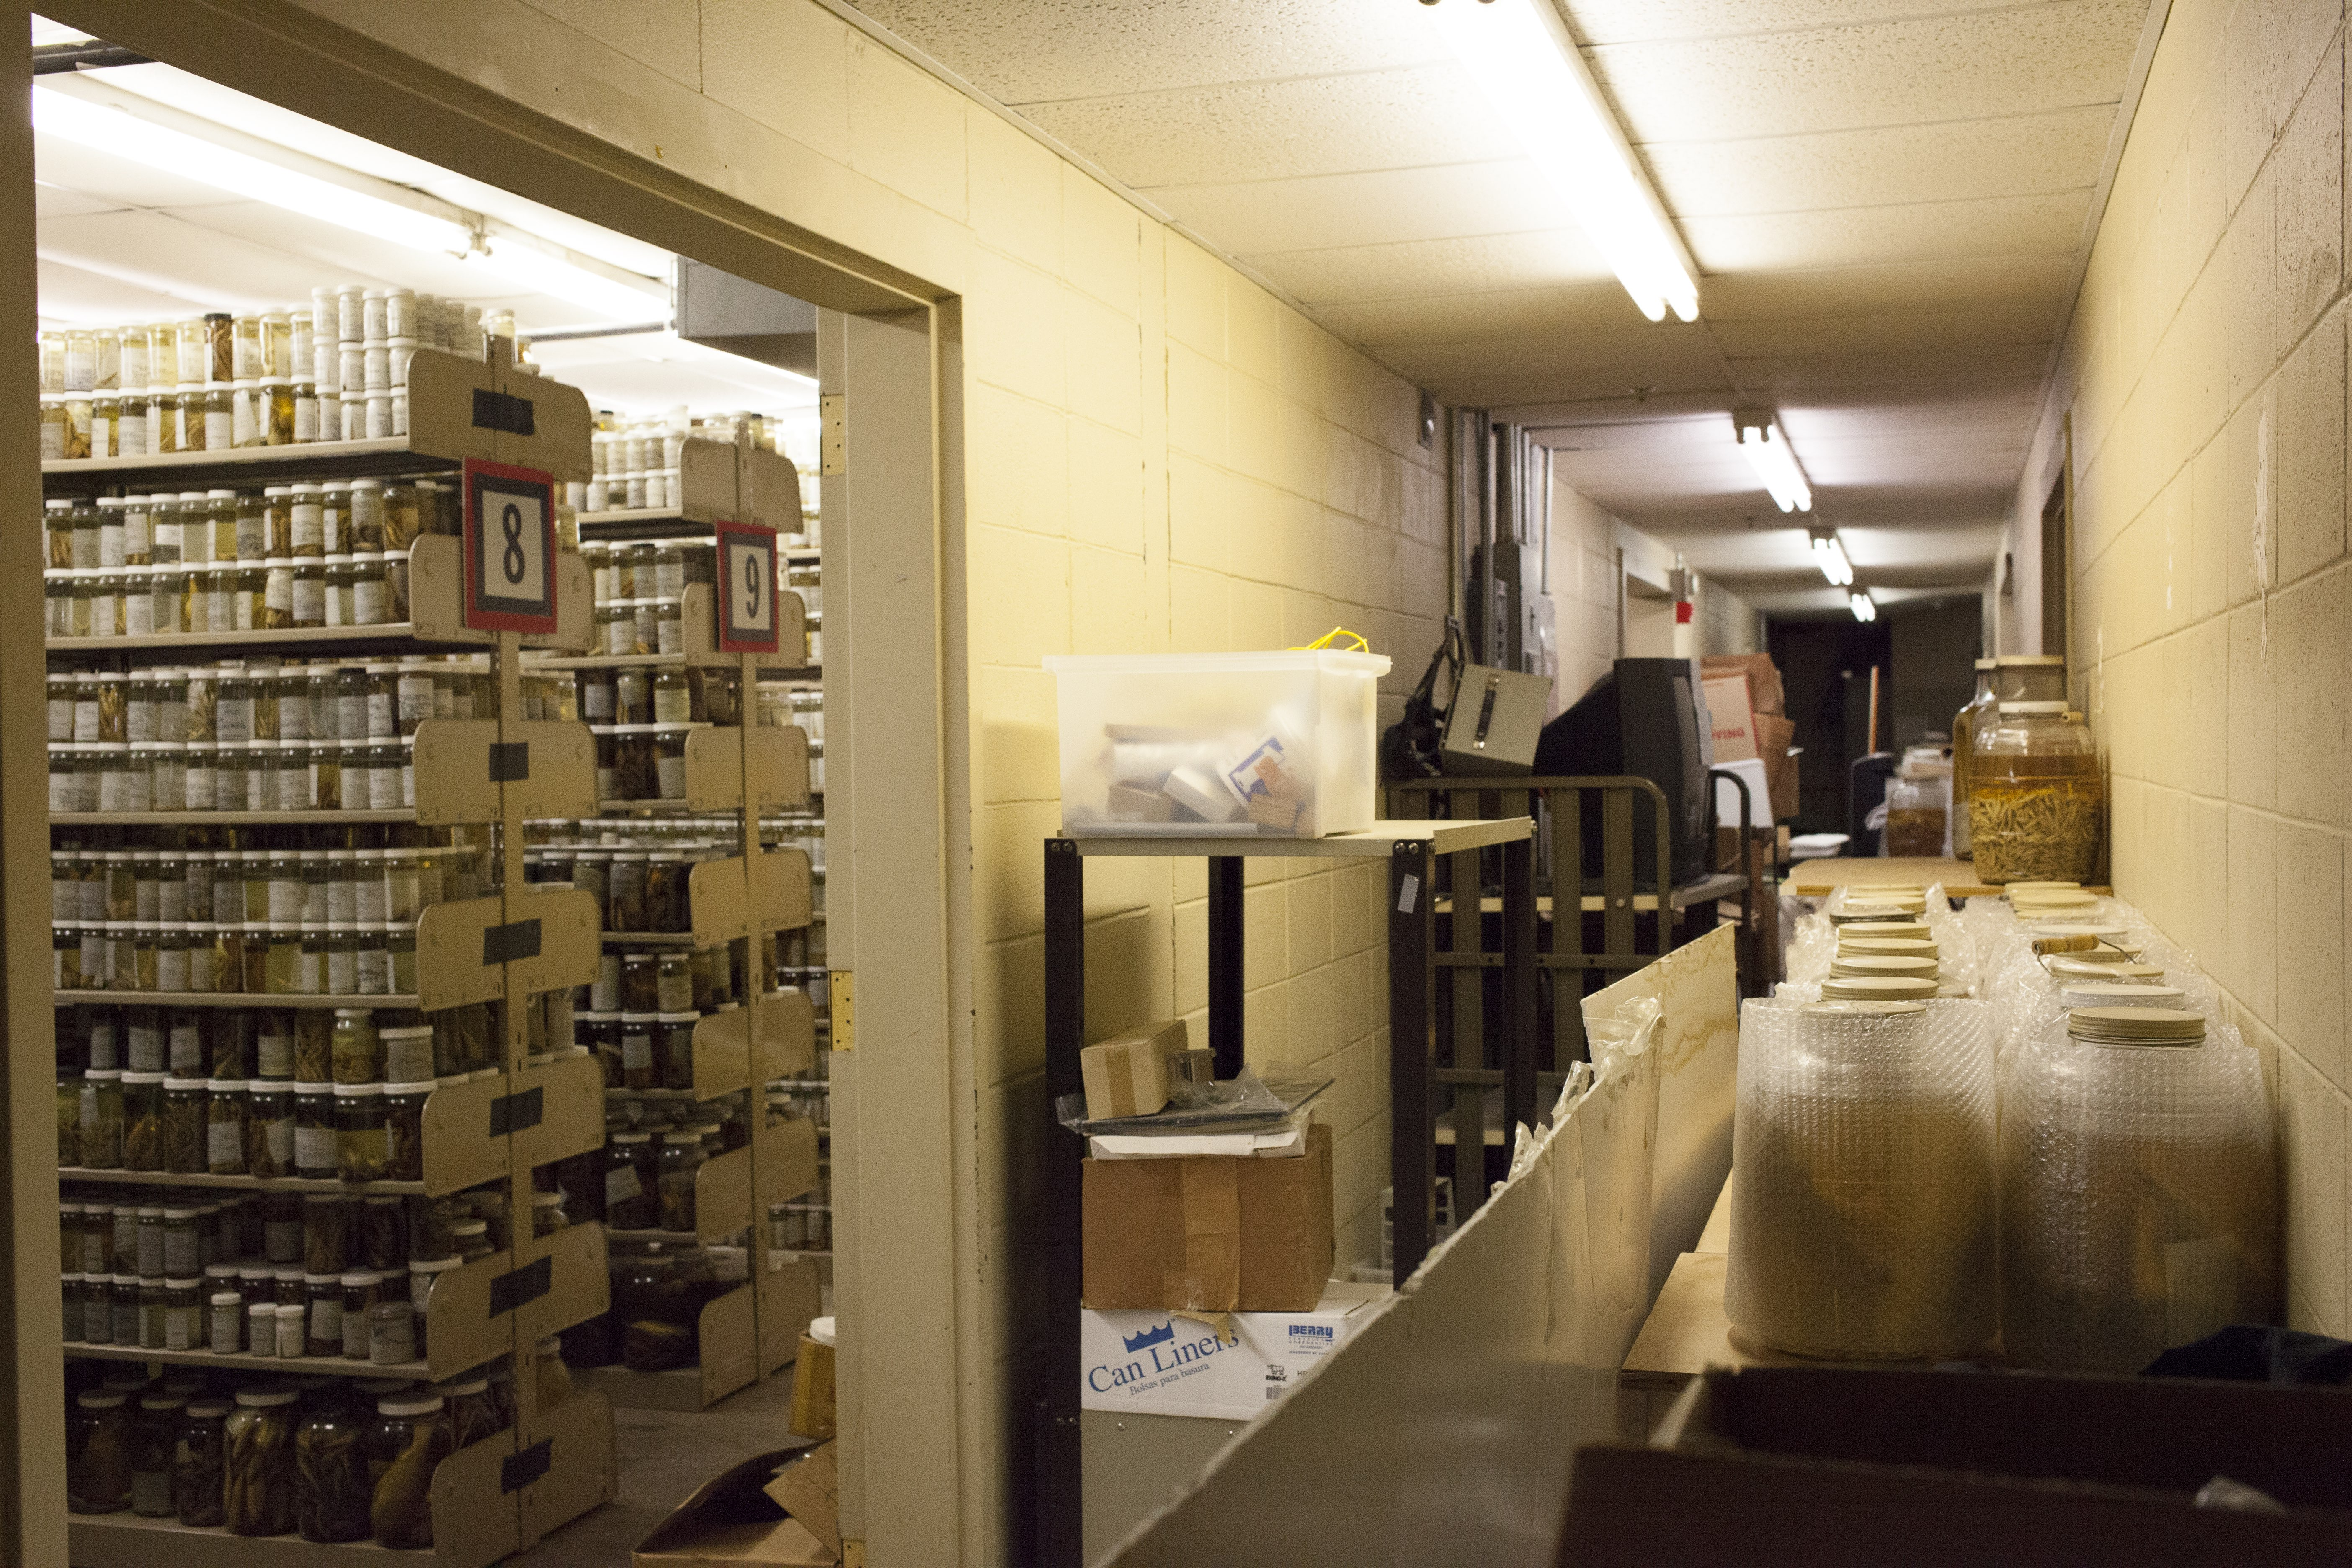 The ULM fish collection at its location in an old athletic facility, where it has been stored for the past five years. (Irina Zhorov/The Pulse)